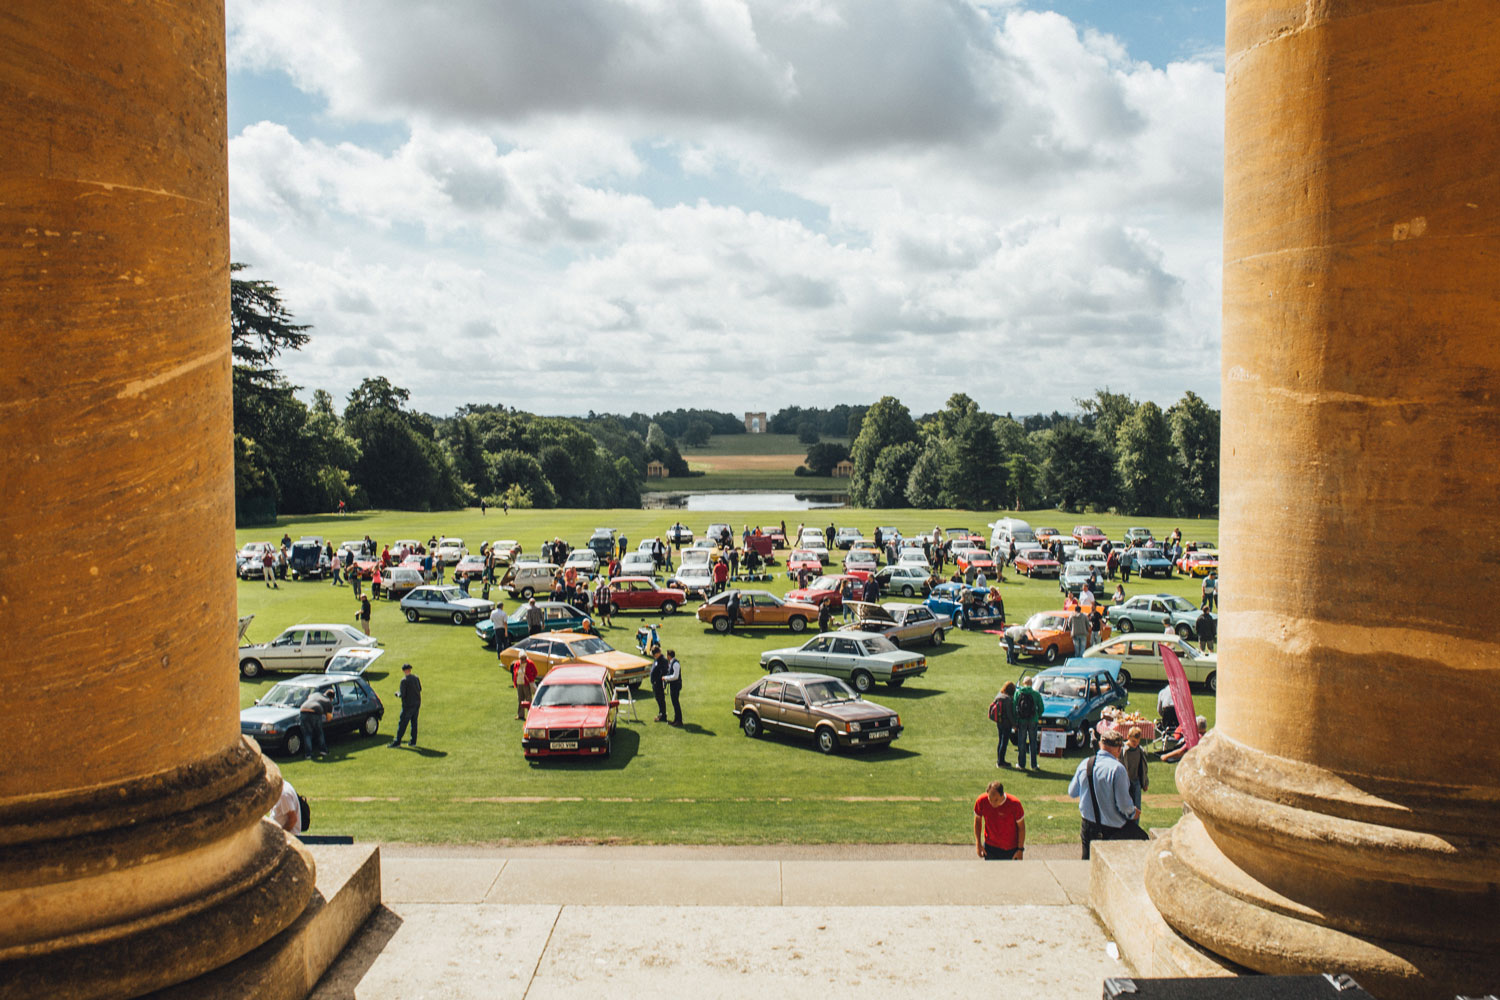 The 2019 Festival of the Unexceptional is the ultimate stage for unremarkable rides